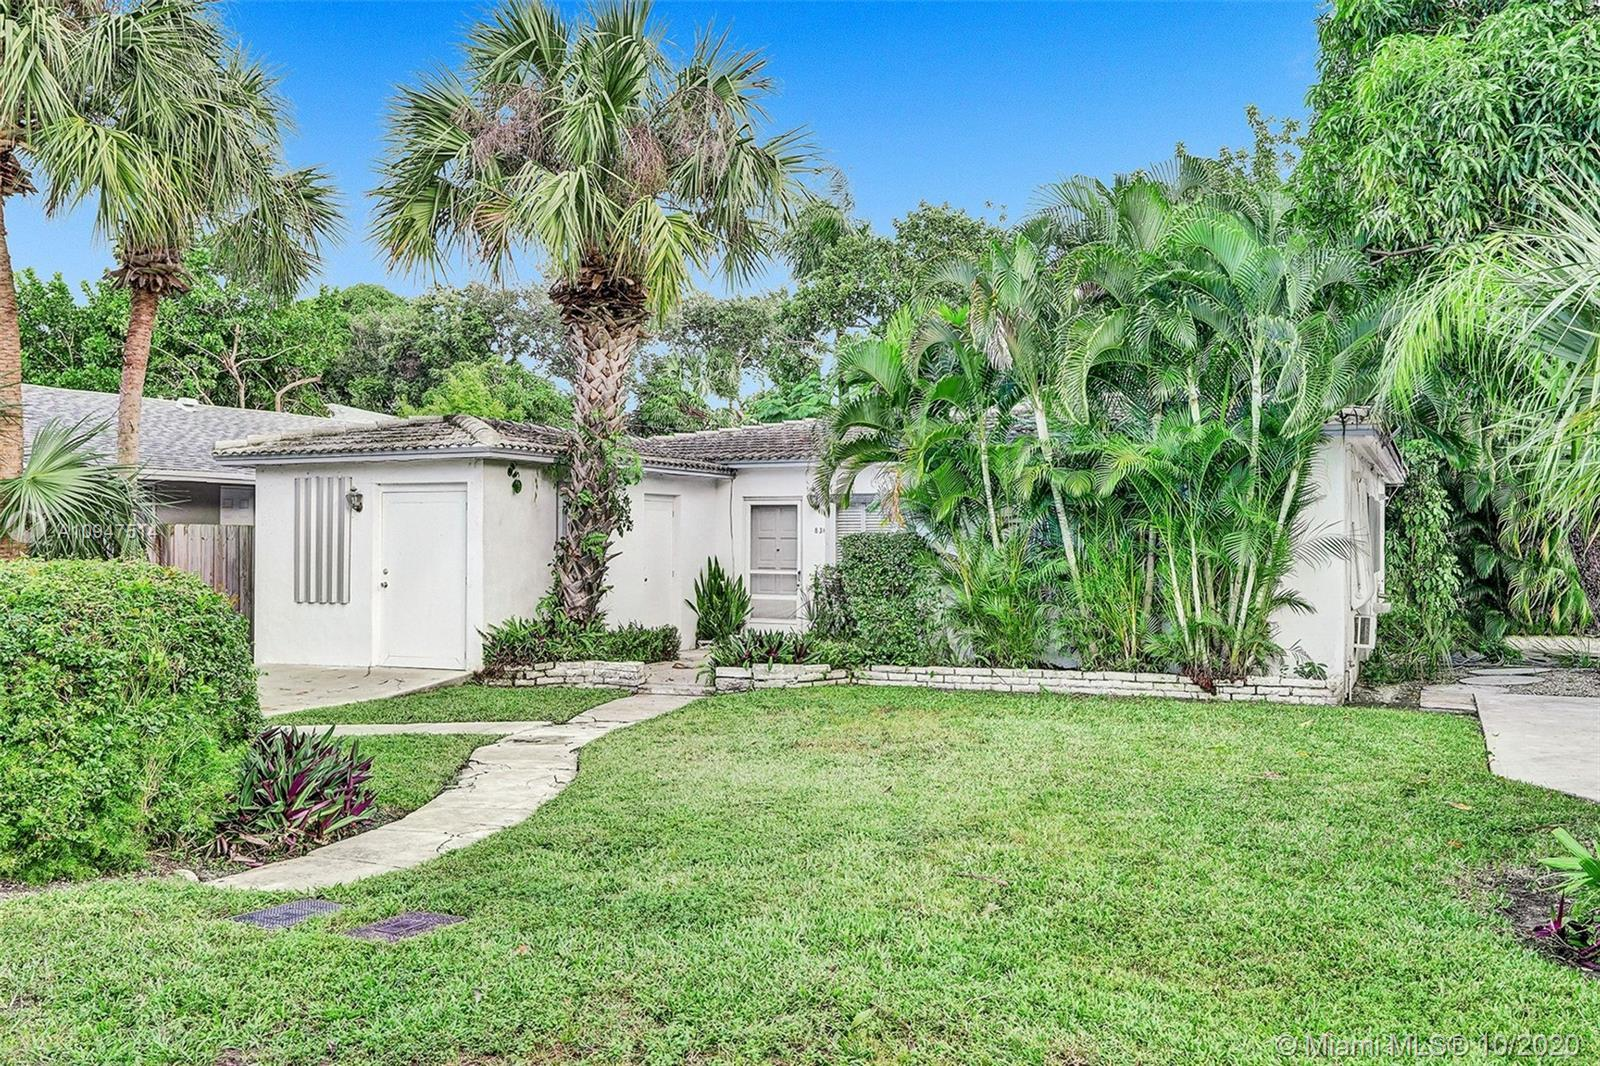 Remarkable Rio Vista opportunity - this spacious 3 bed 3 bath home and 1/1 accessory unit is waiting